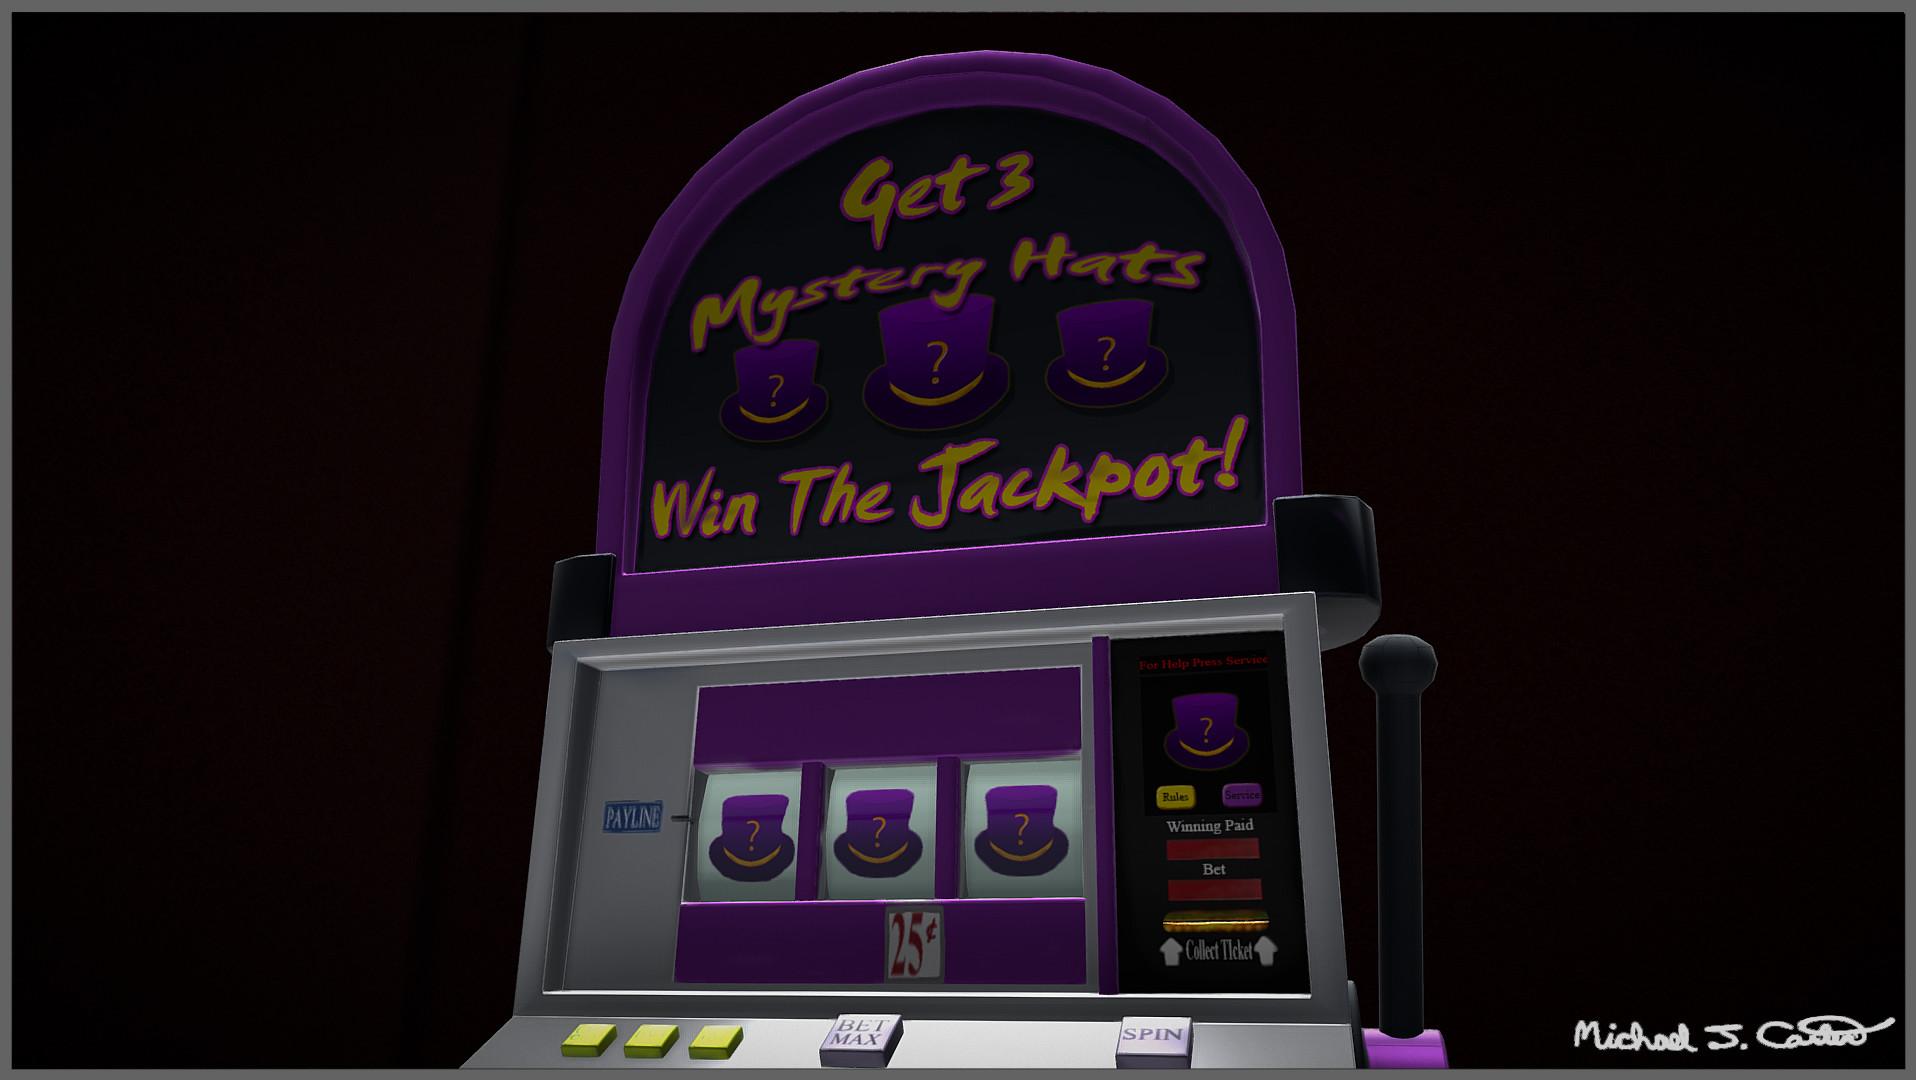 Michael jake carter mcarter slot machine close up view